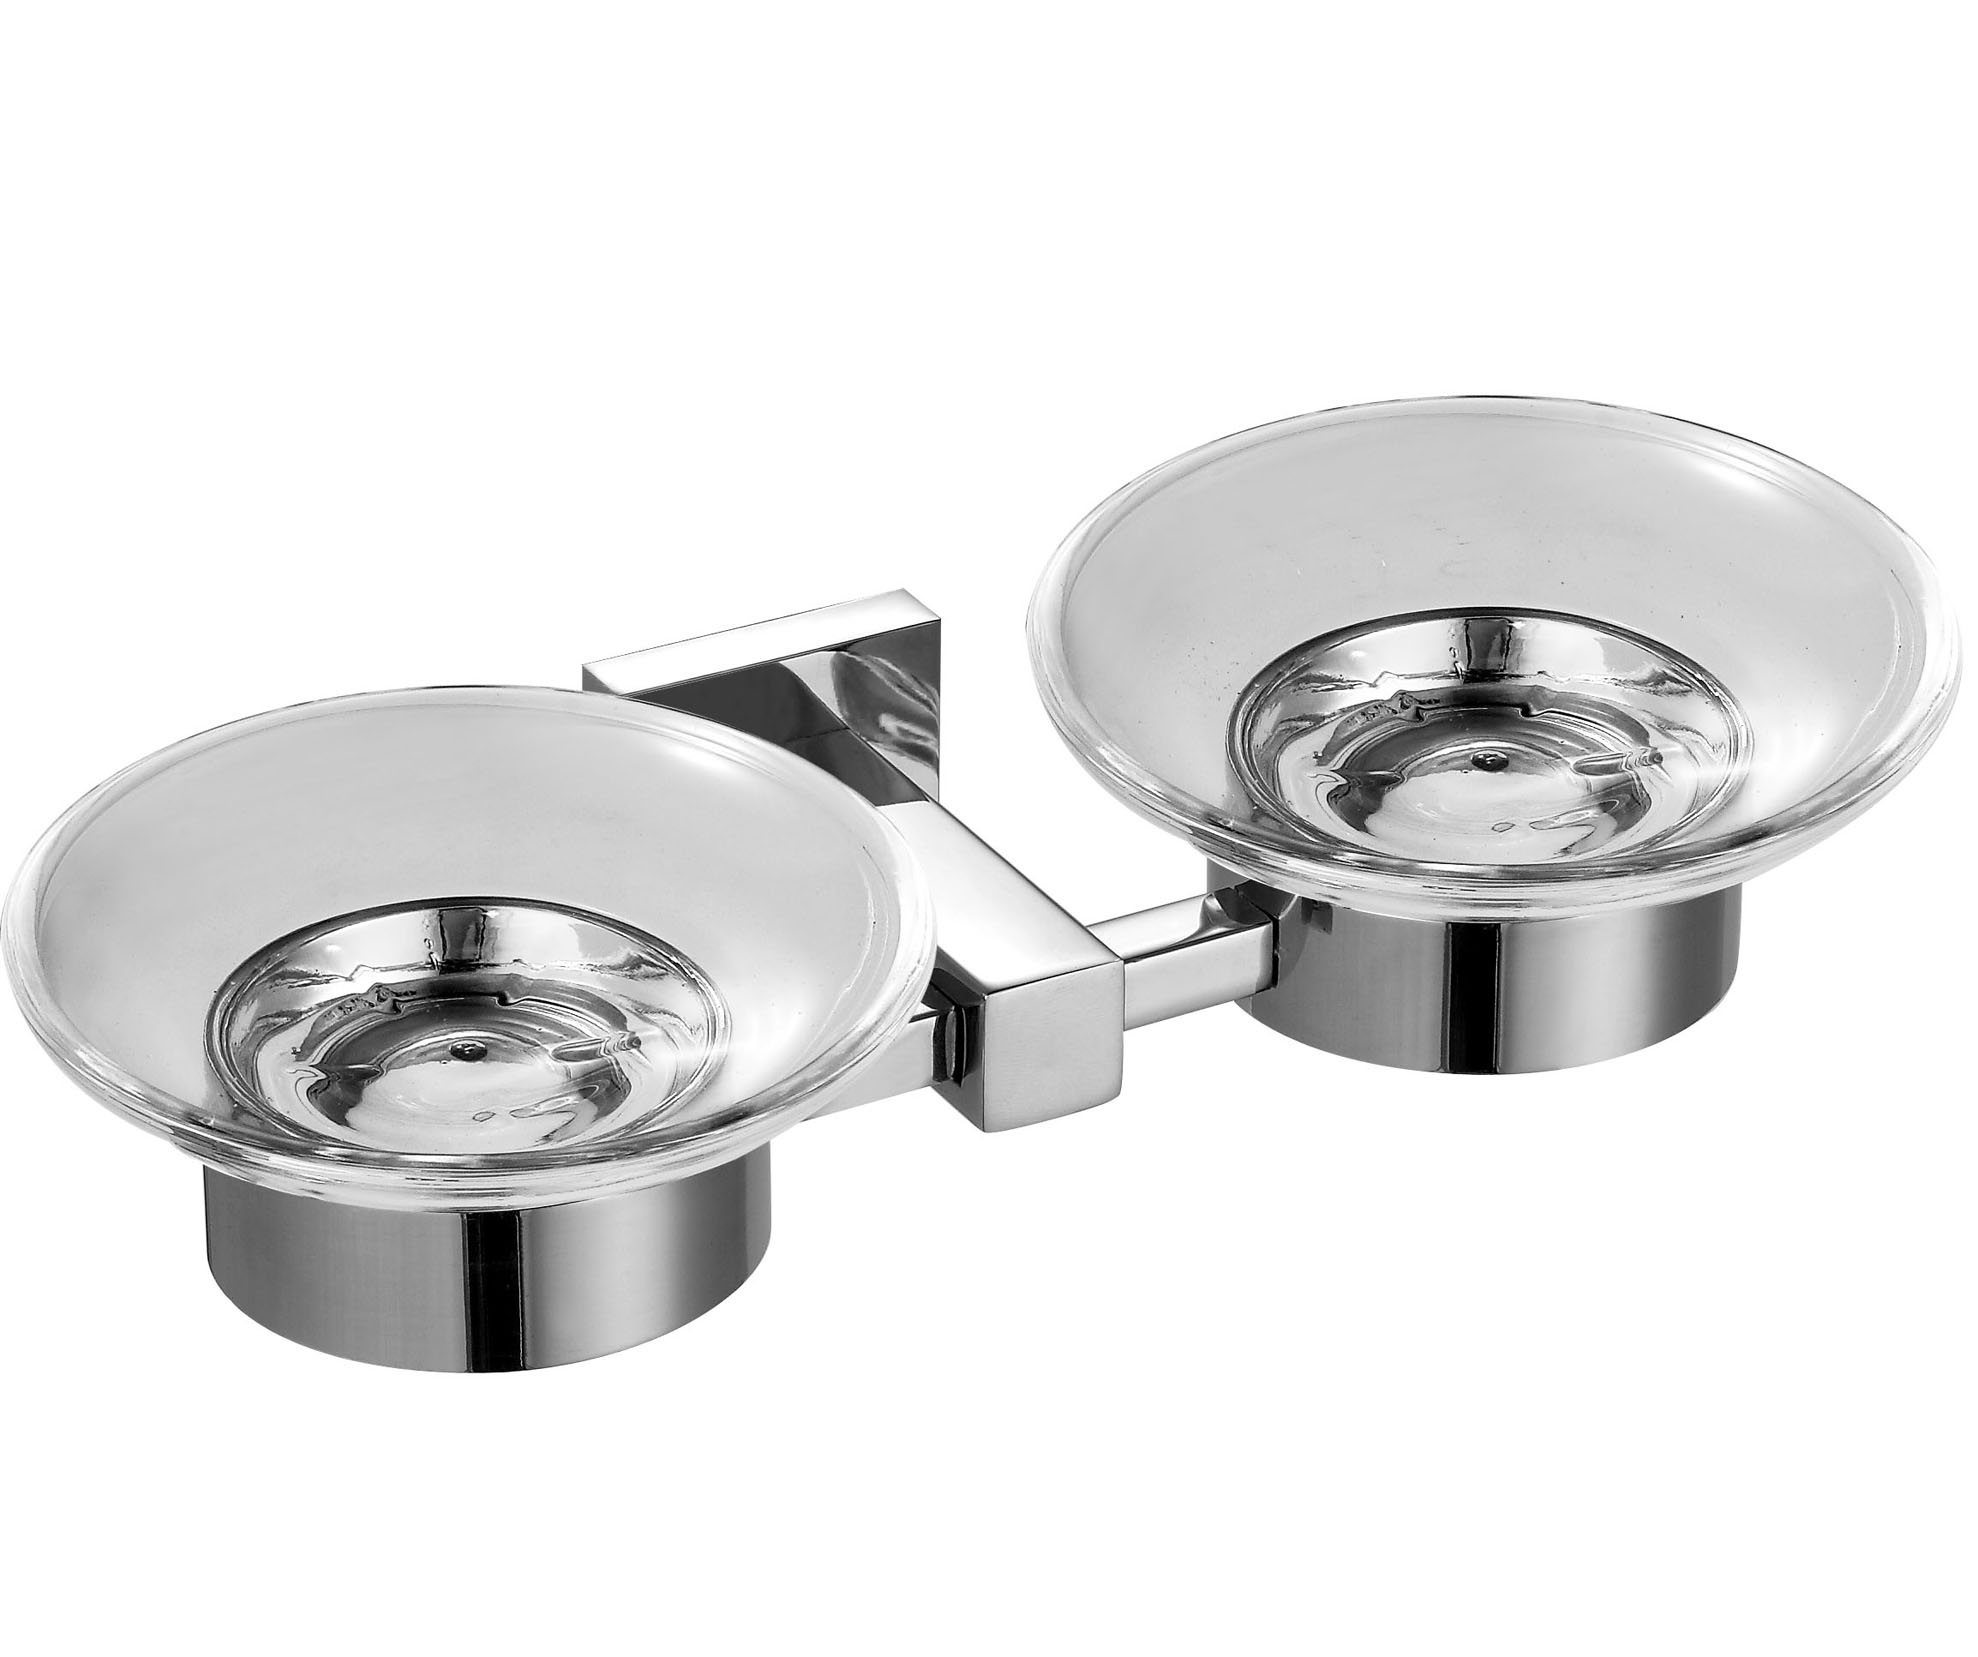 Durable Waterproof Bathroom Accessory Stainless Steel Soap Dish Holder